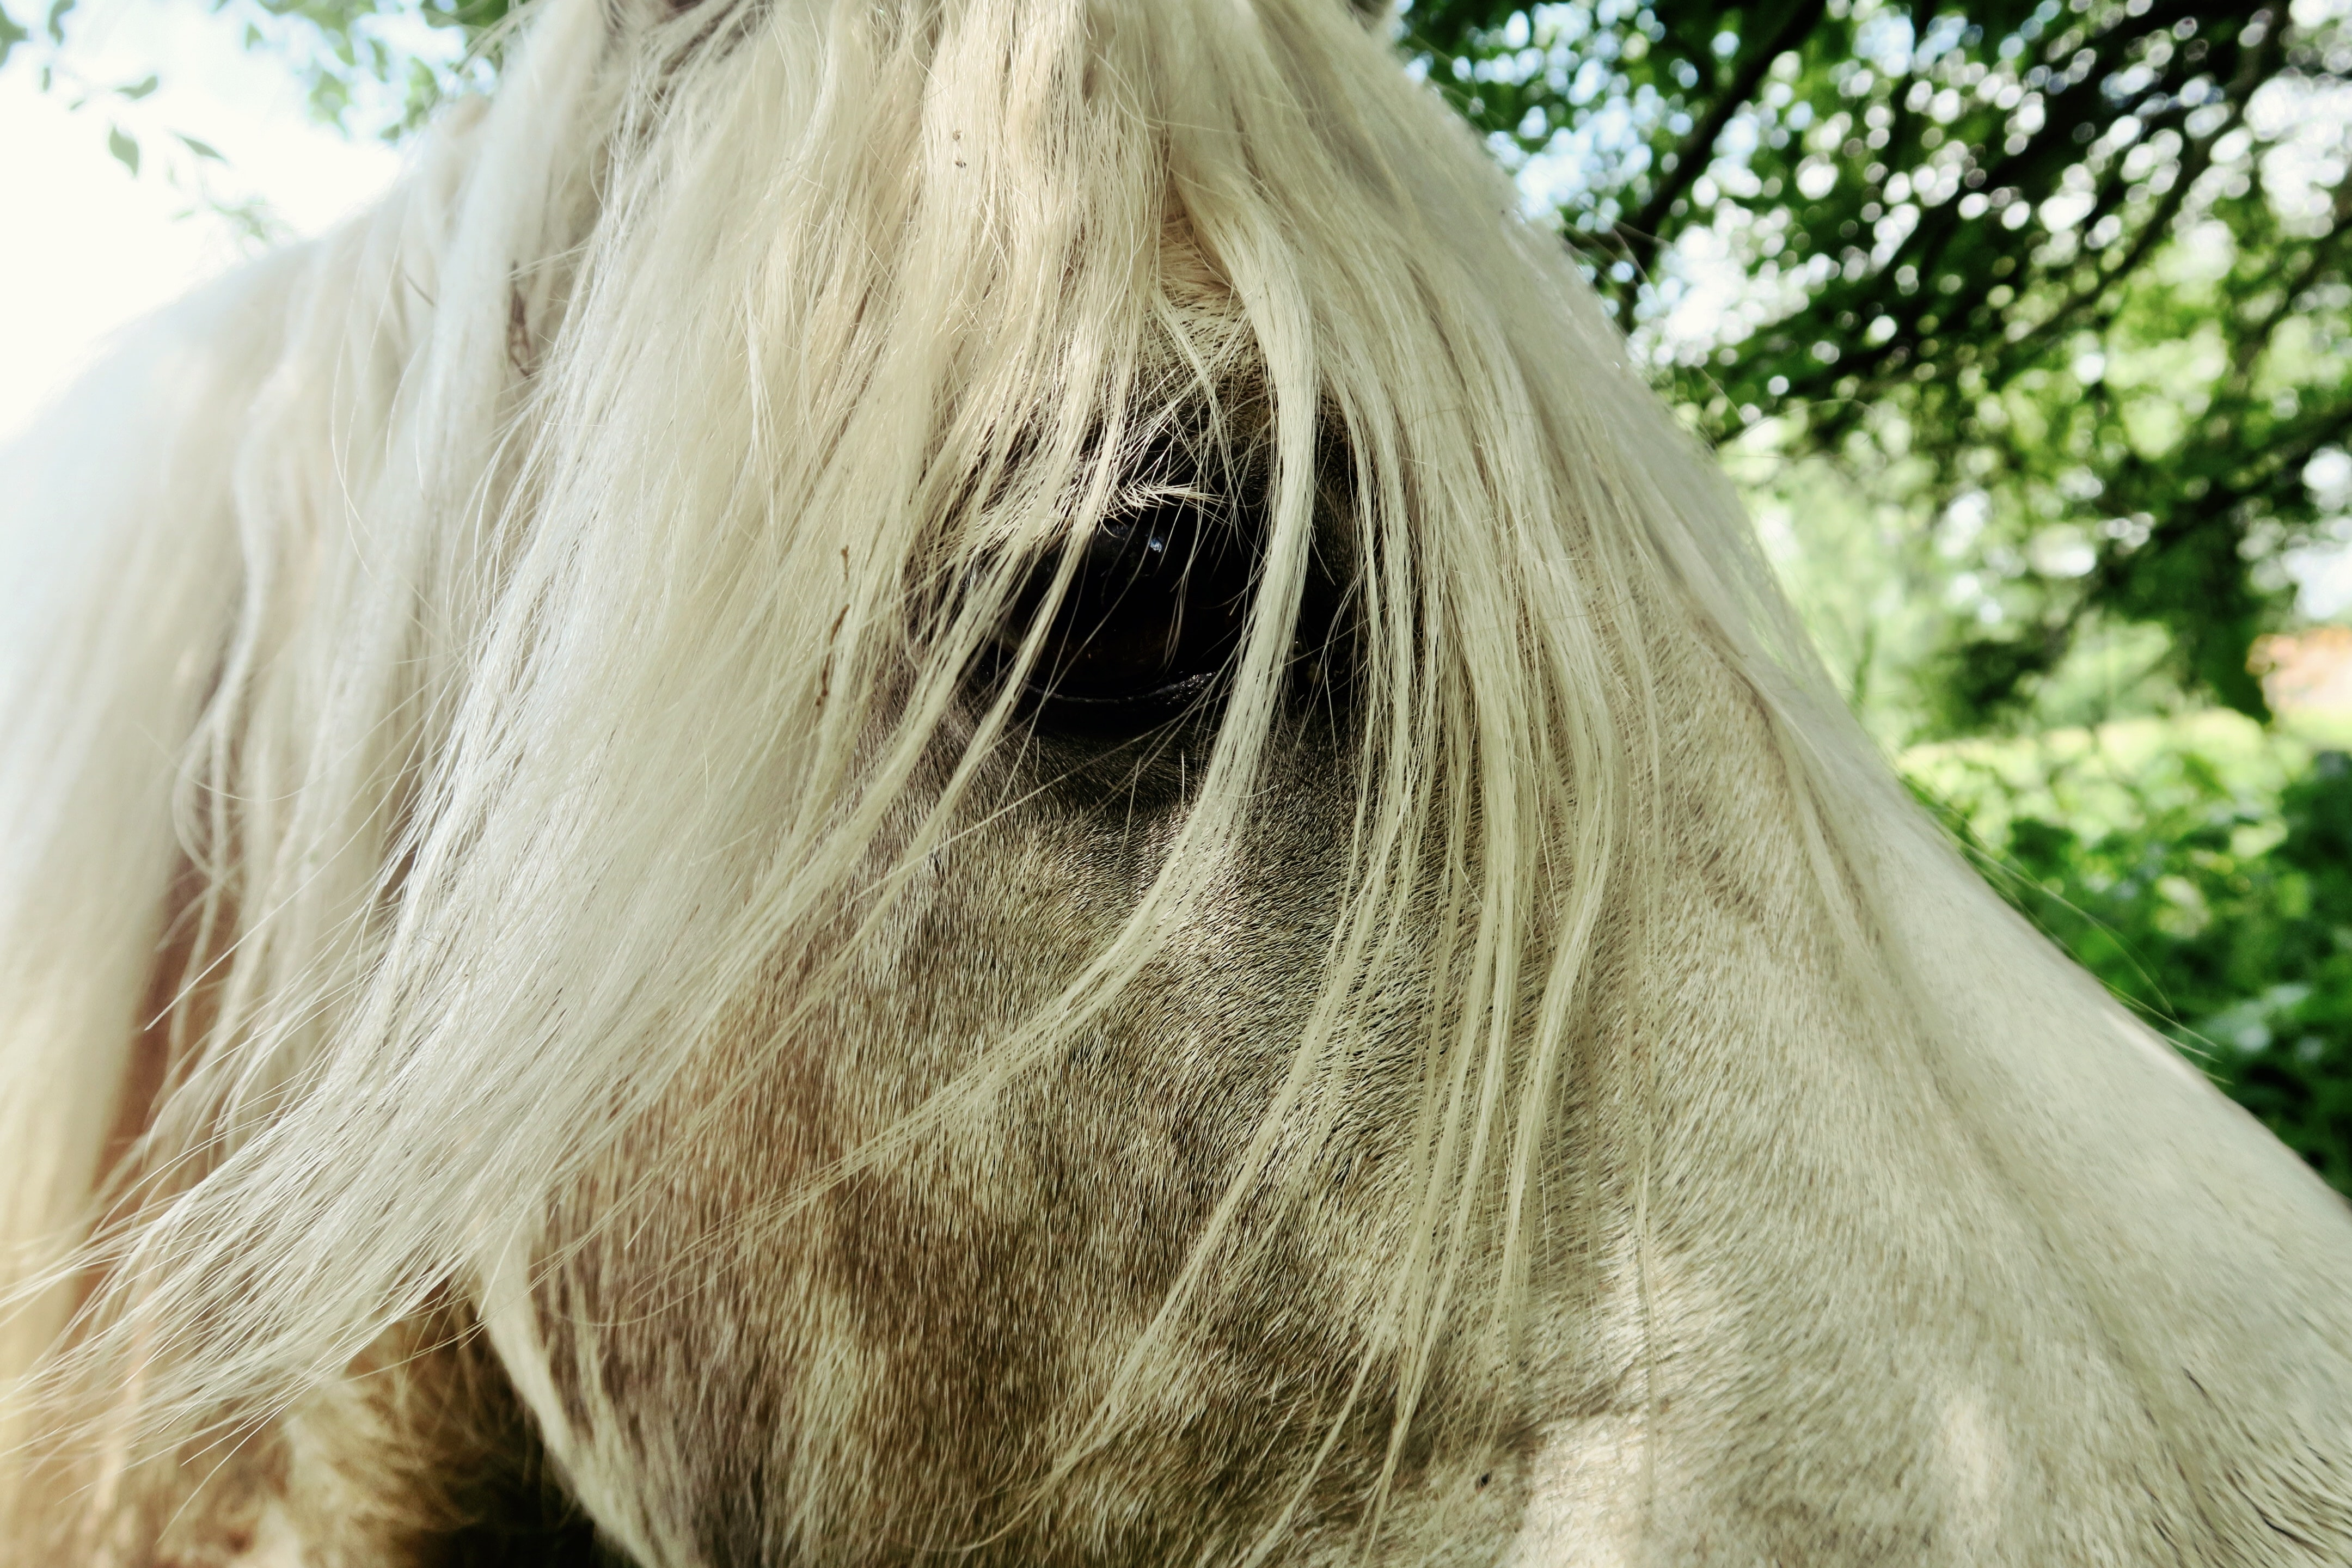 A close-up of a horse's eye partly covered by its flaxen mane